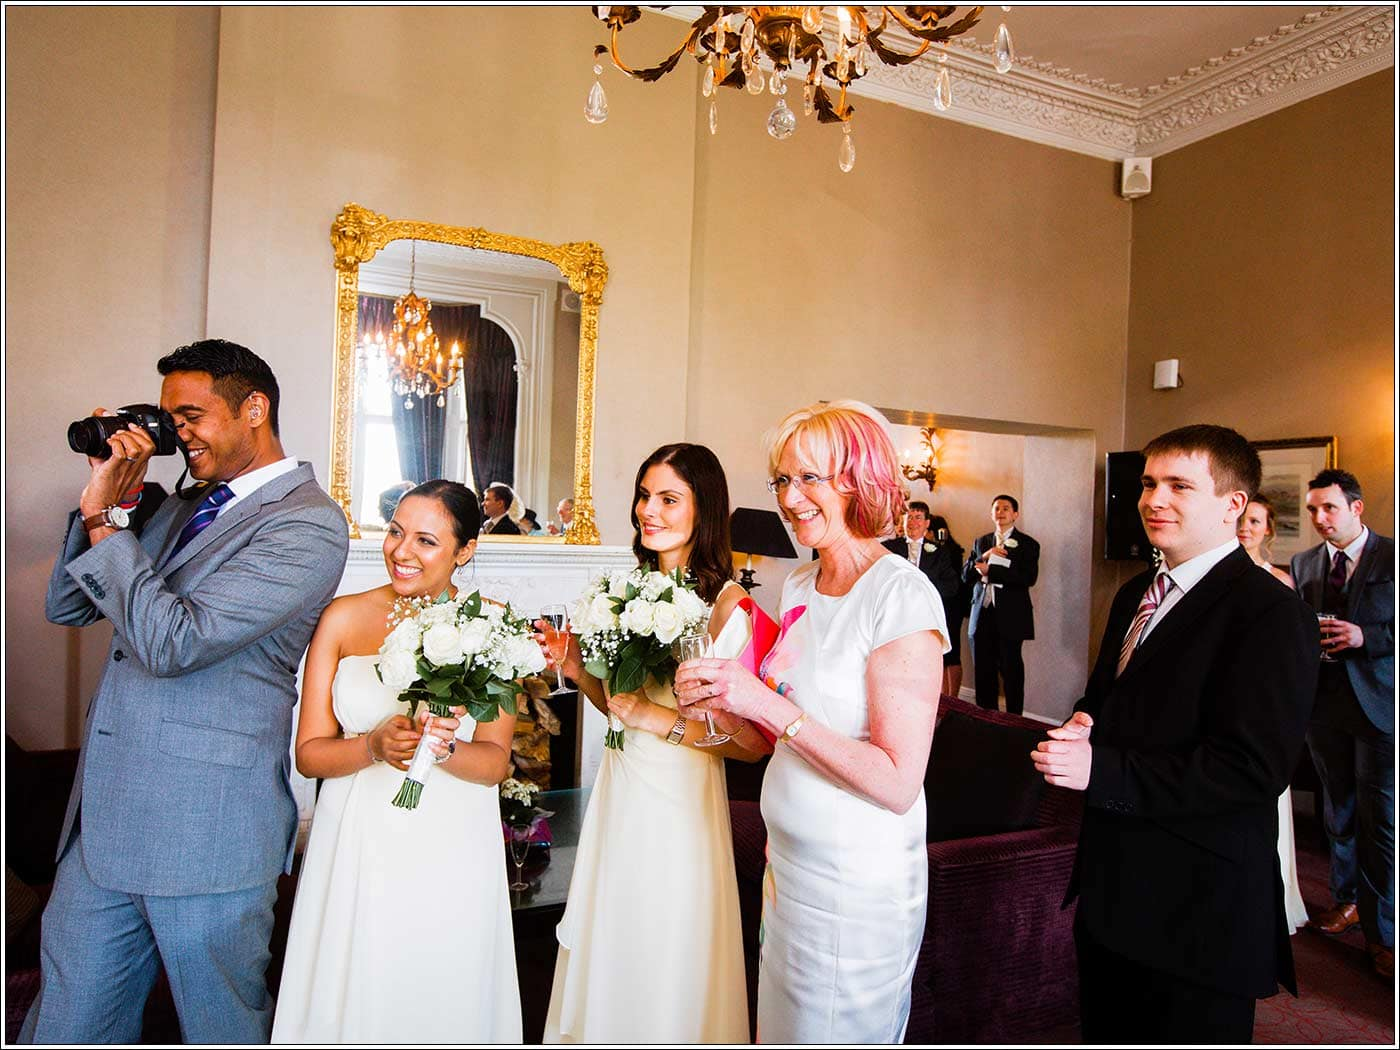 Guests welcoming bride and groom at Walton Hall